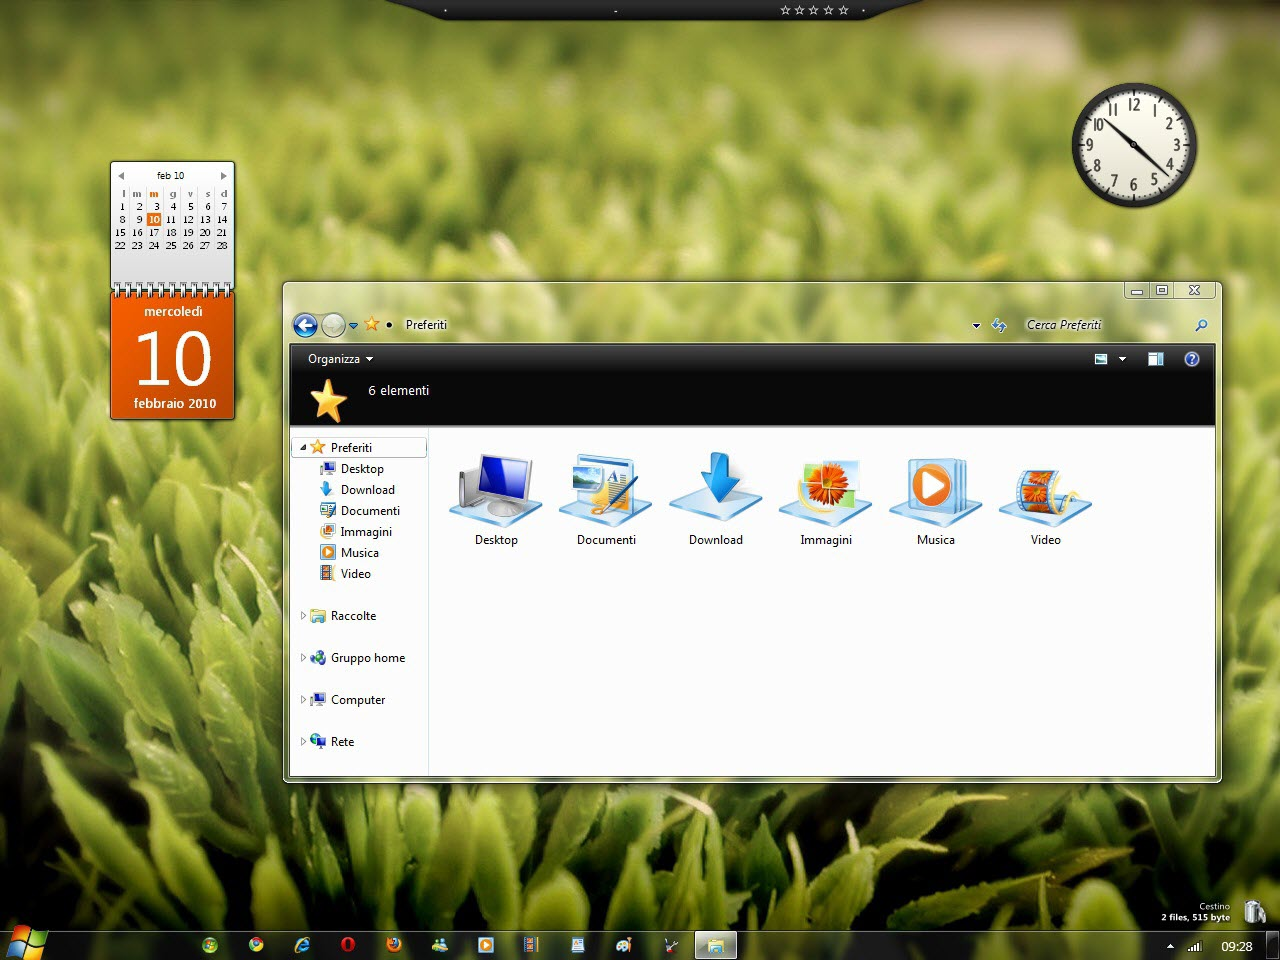 Elegant Glass Windows 7 Desktop Theme @ 50+ Stunning Windows 7 Desktop Themes